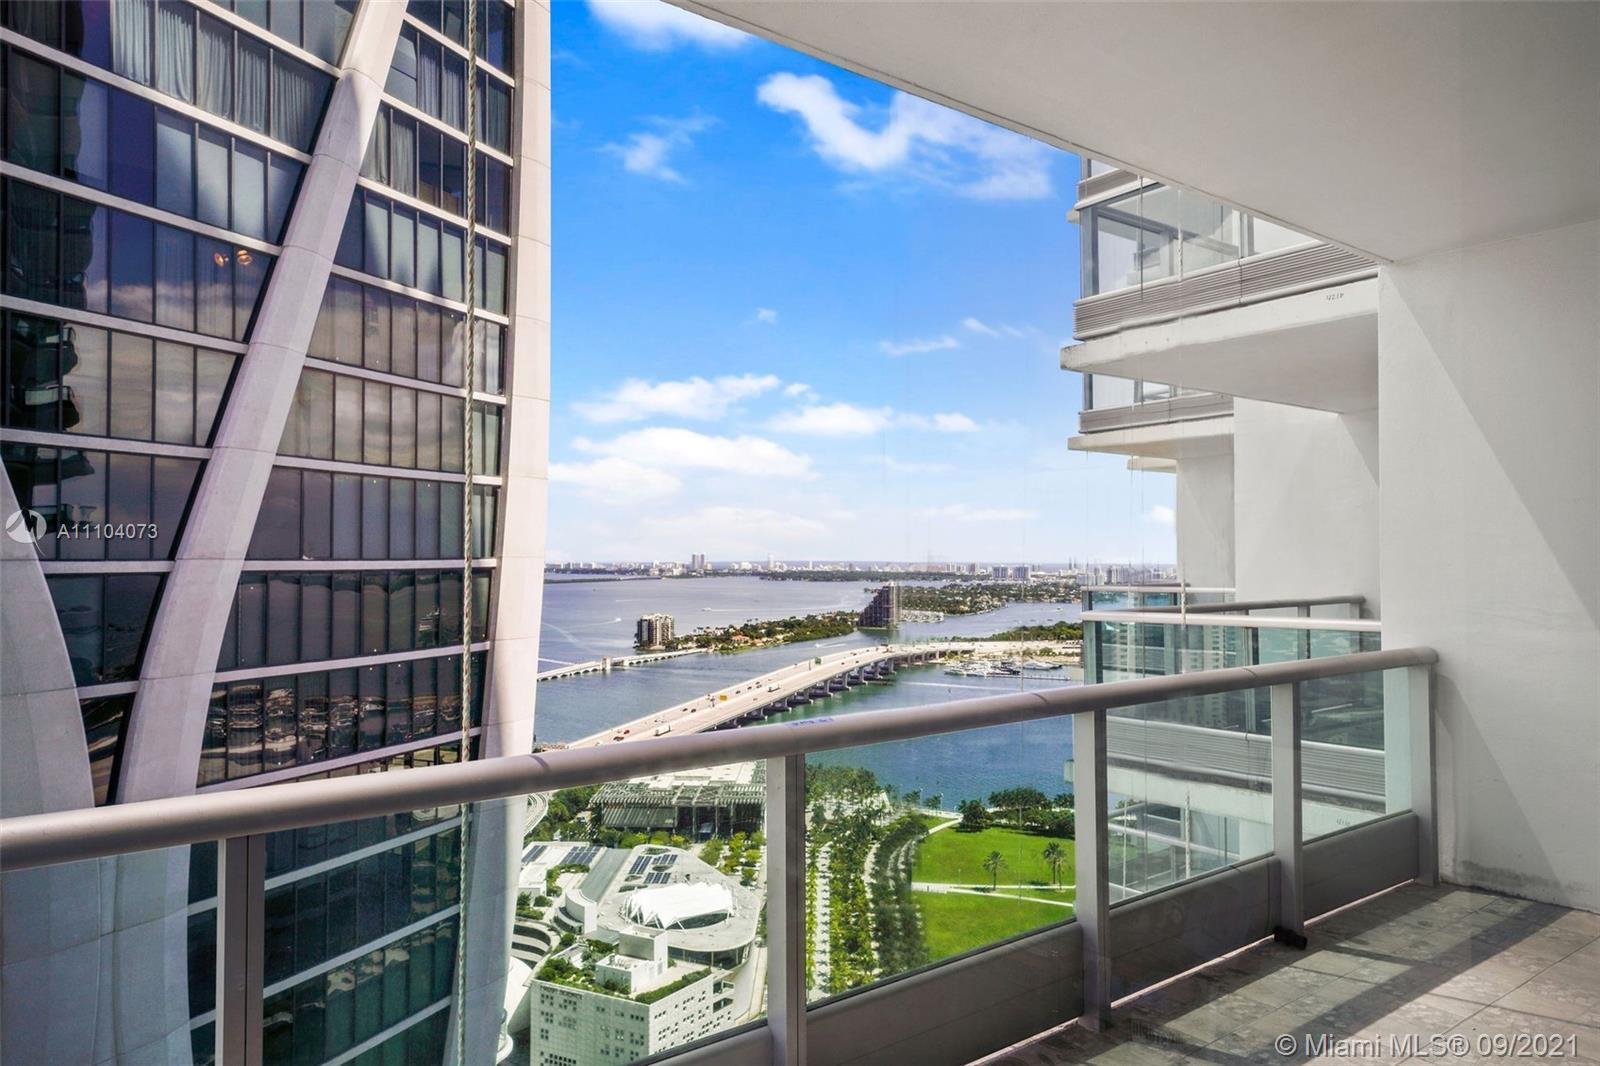 This decorator fully furnished condo in 900 Biscayne Blvd - one of the best buildings in Miami and t